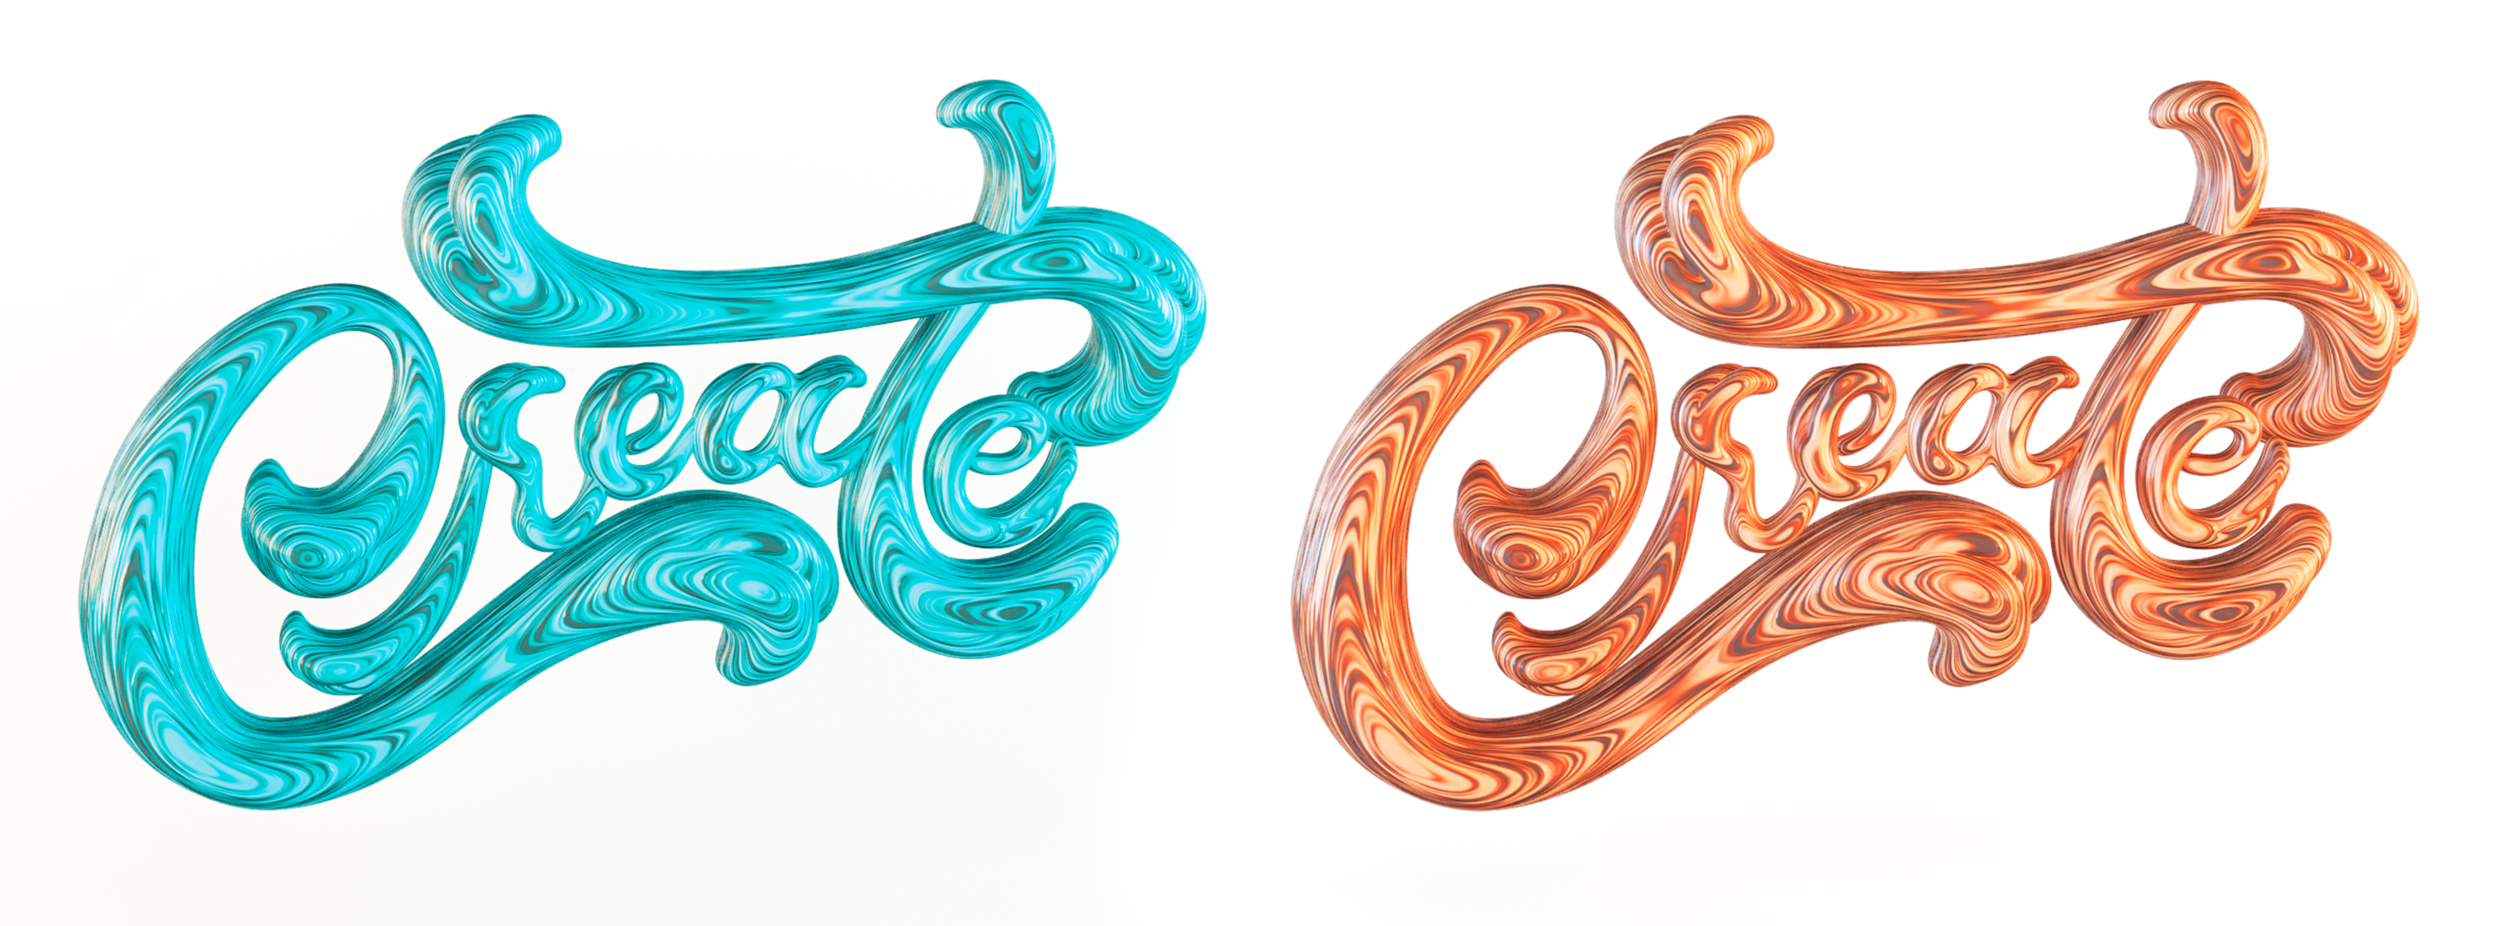 Create 3d Wood Chunky Lettering by Noah Camp